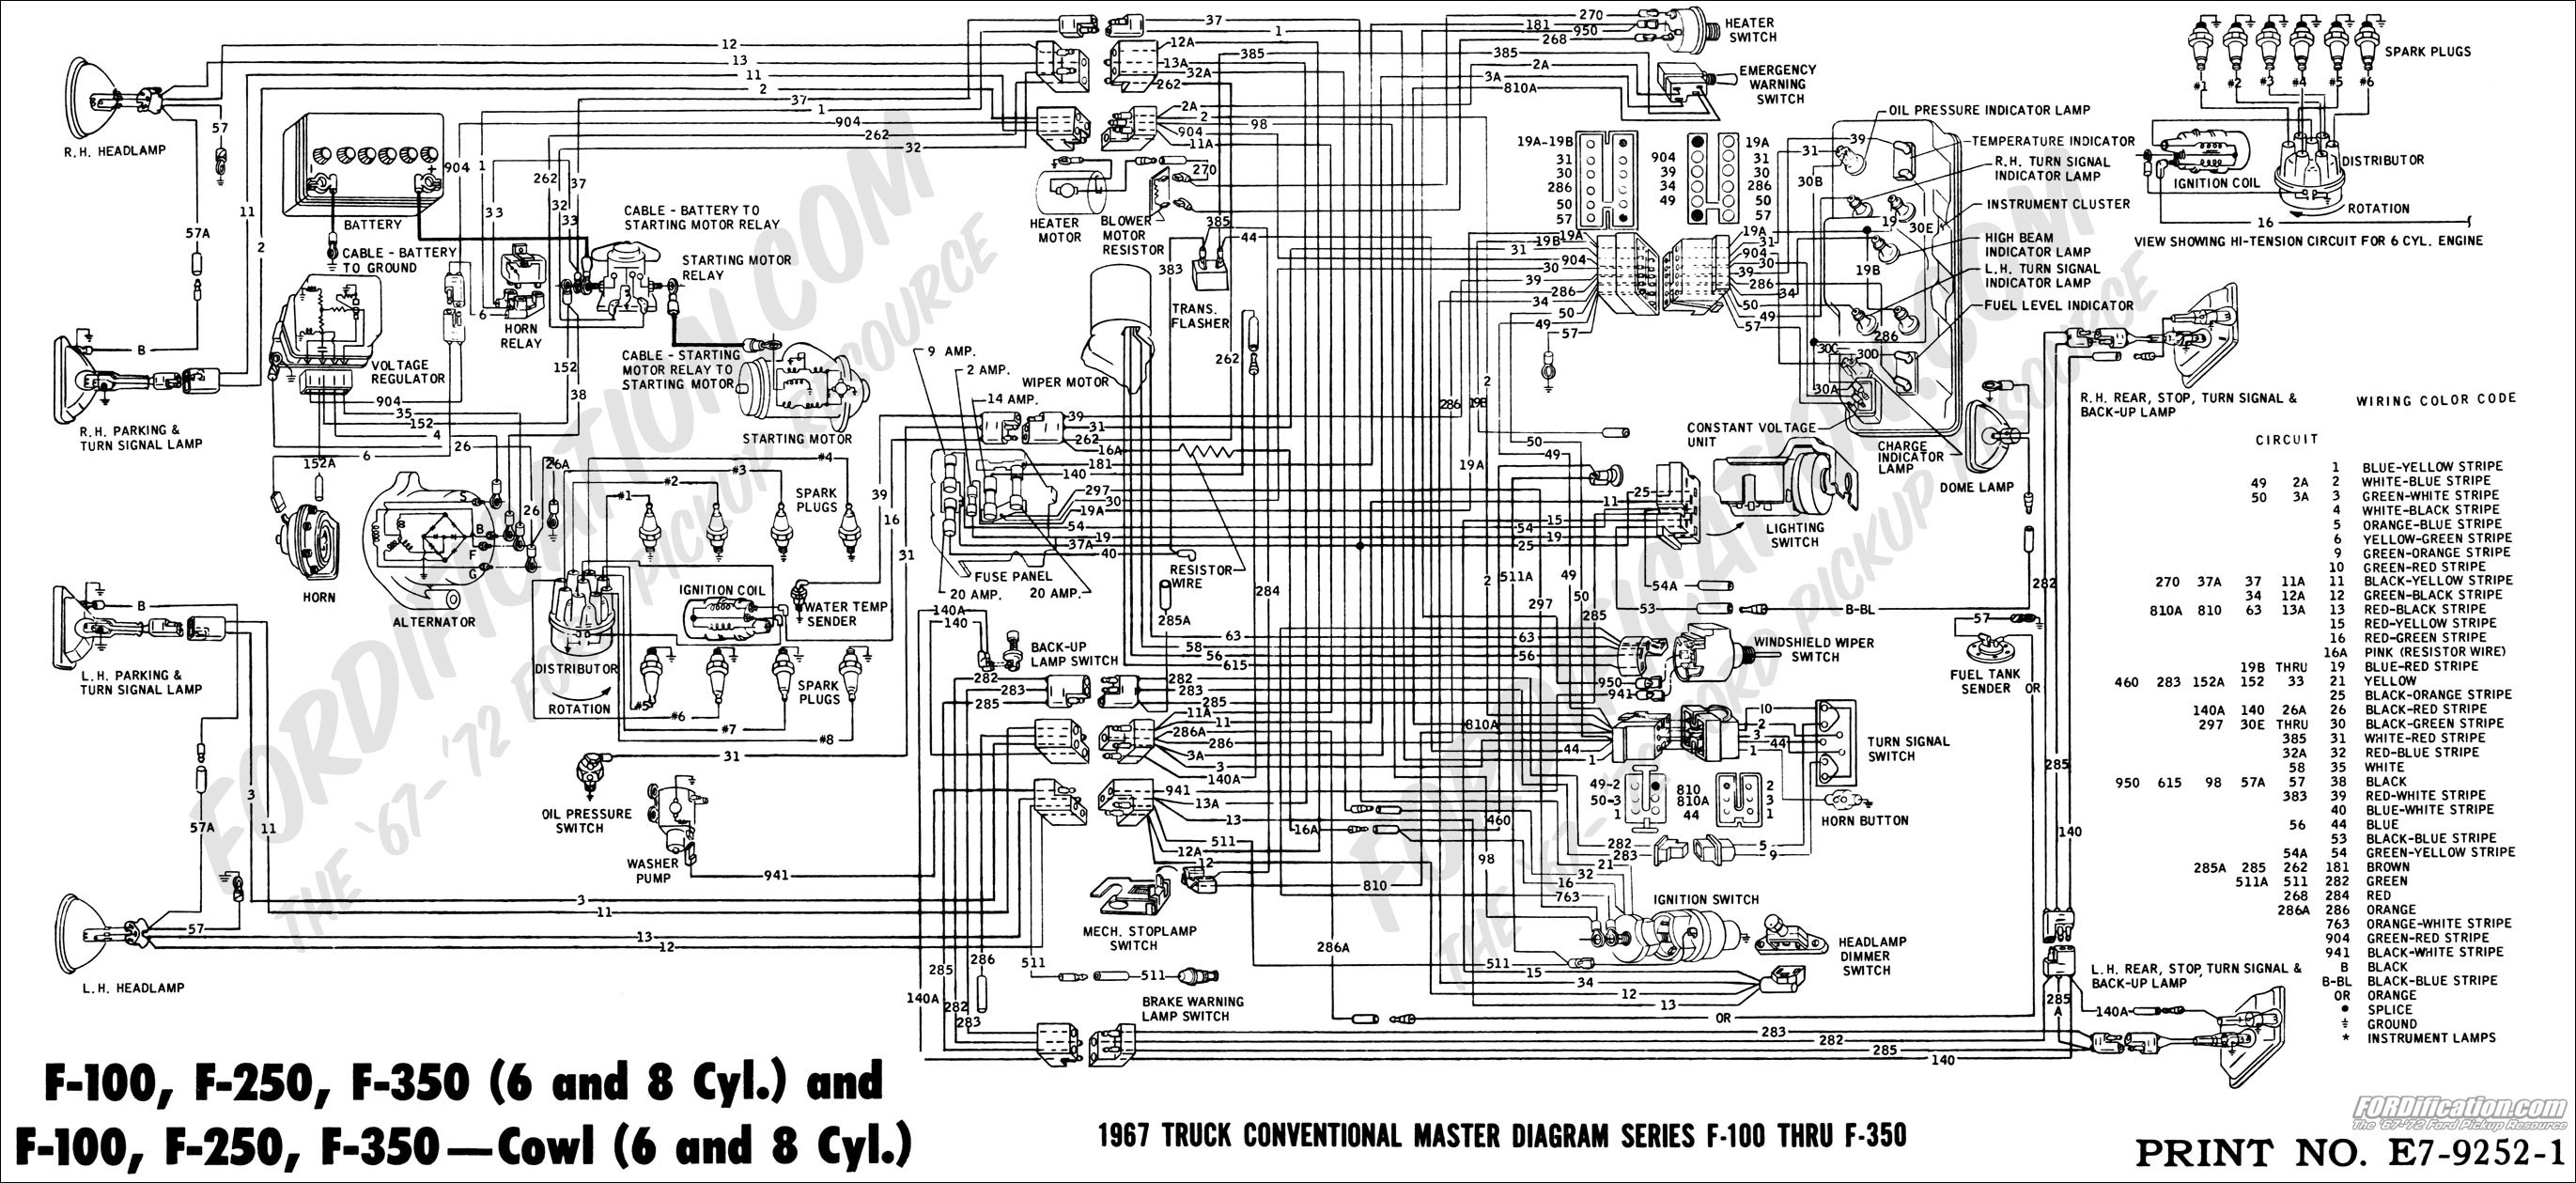 1993 ford f150 wiring diagram for stoplight wire center u2022 rh daniablub  co 1993 f150 transmission